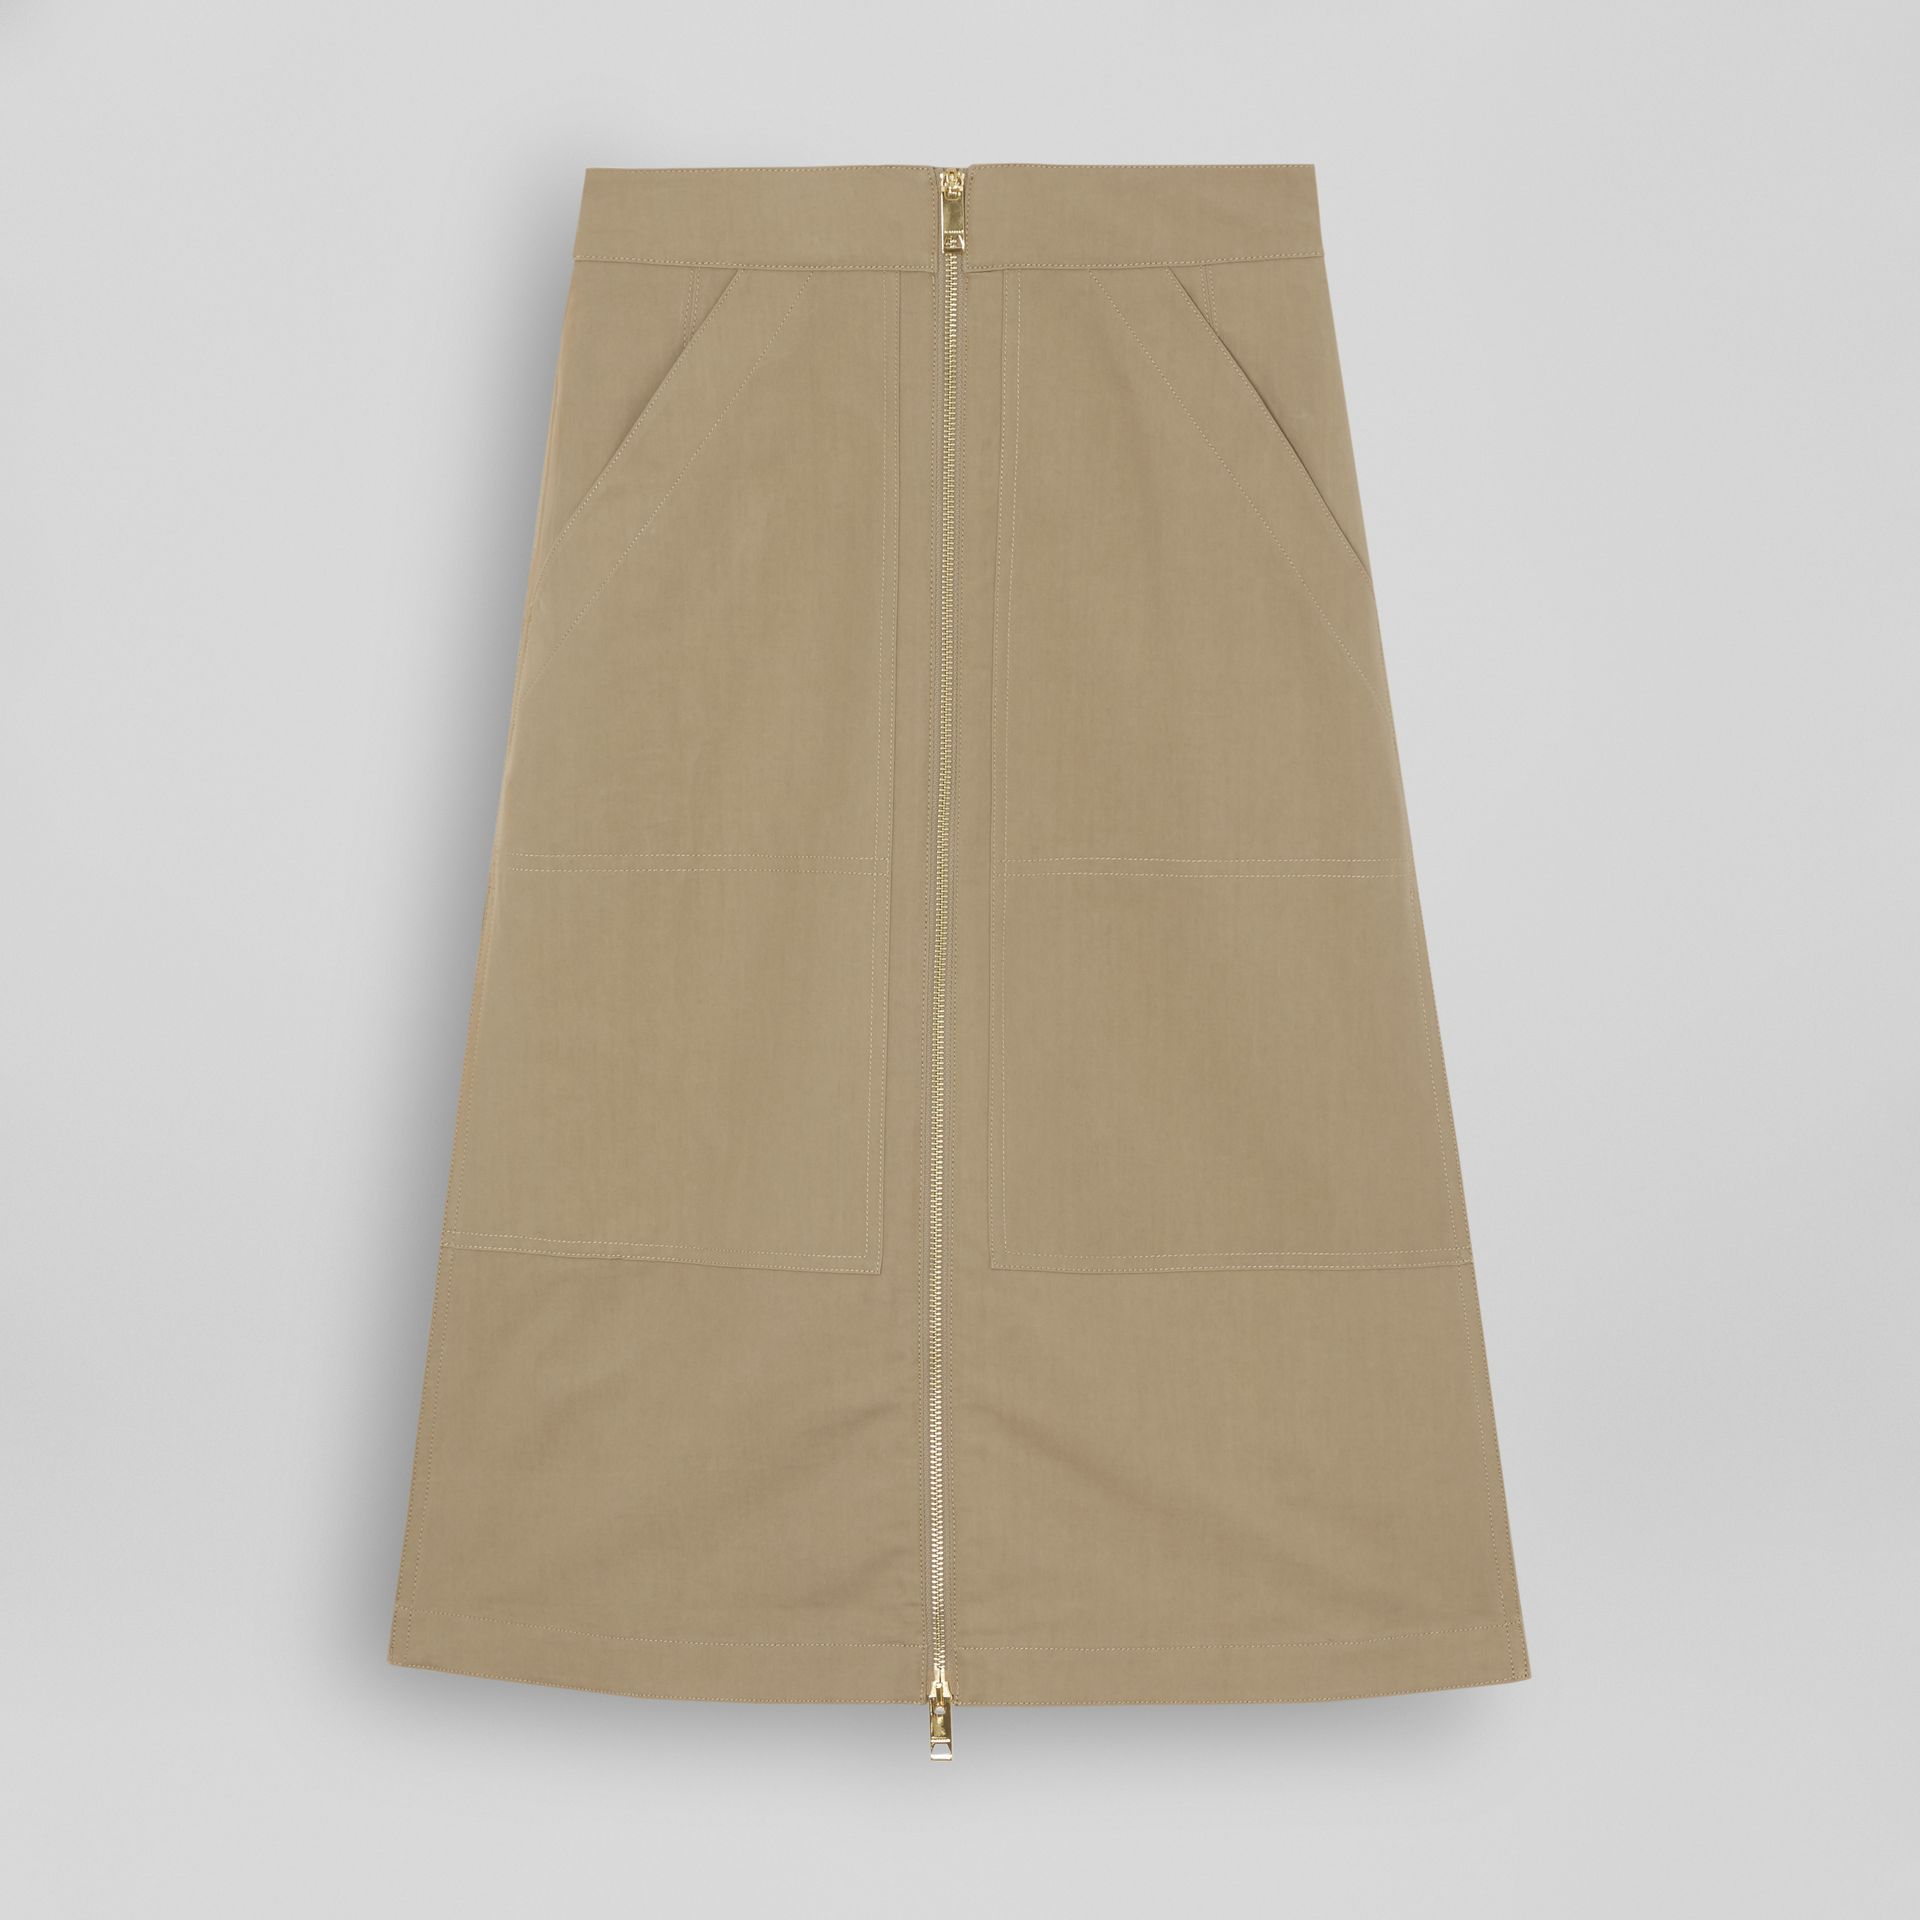 Cotton Silk High-waisted Skirt in Beige - Women | Burberry Singapore - gallery image 3